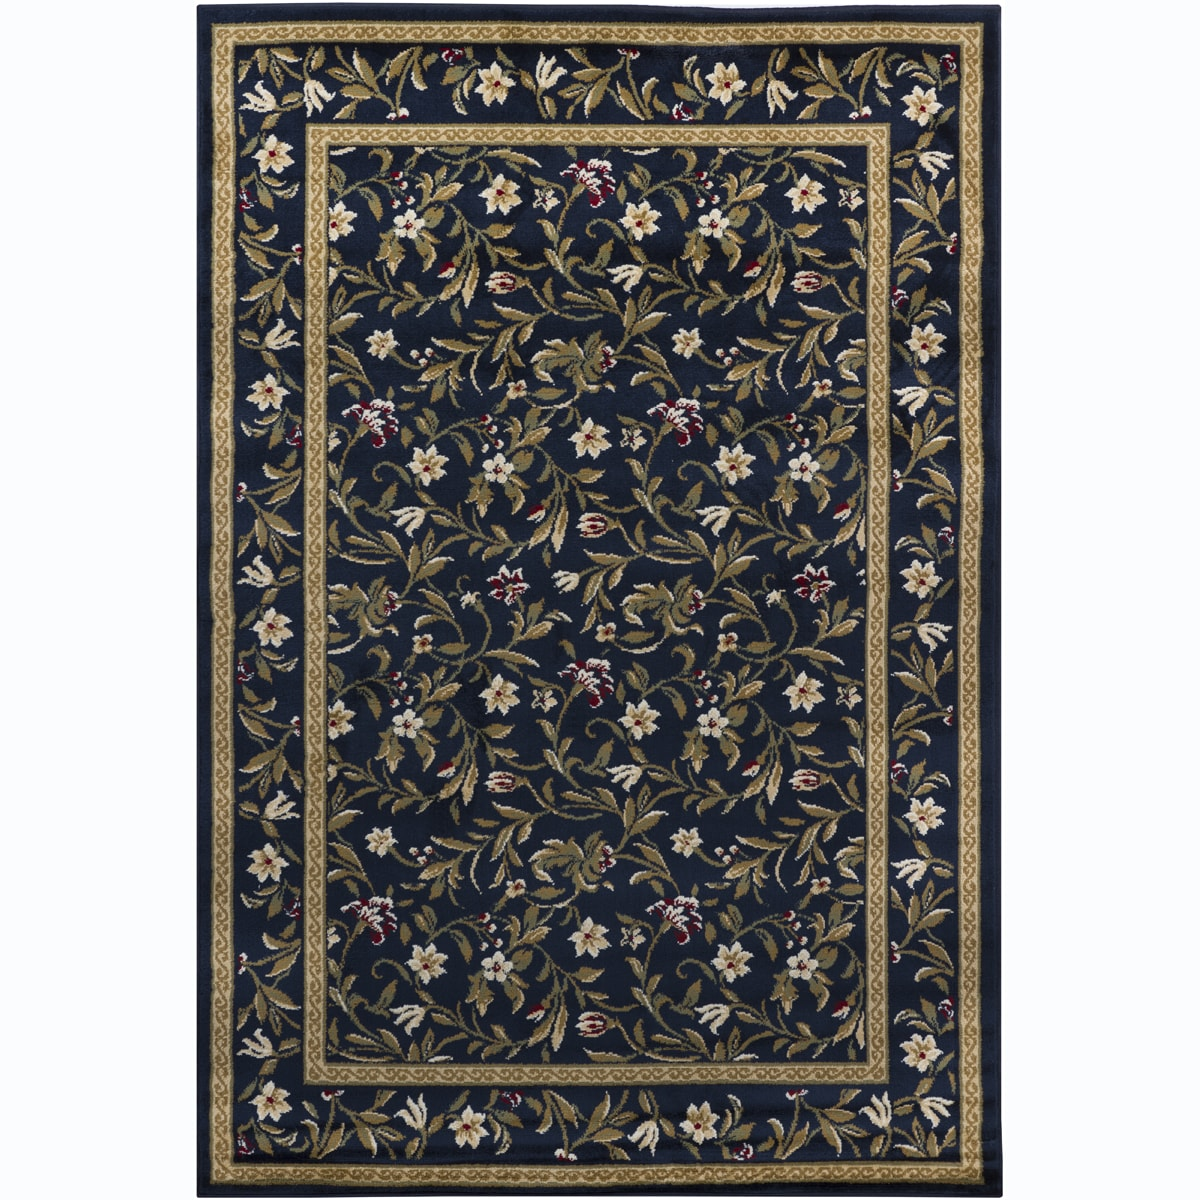 Artist's Loom Indoor Transitional Floral Rug (5'3 x 7'9) - 5'3 x 7'9